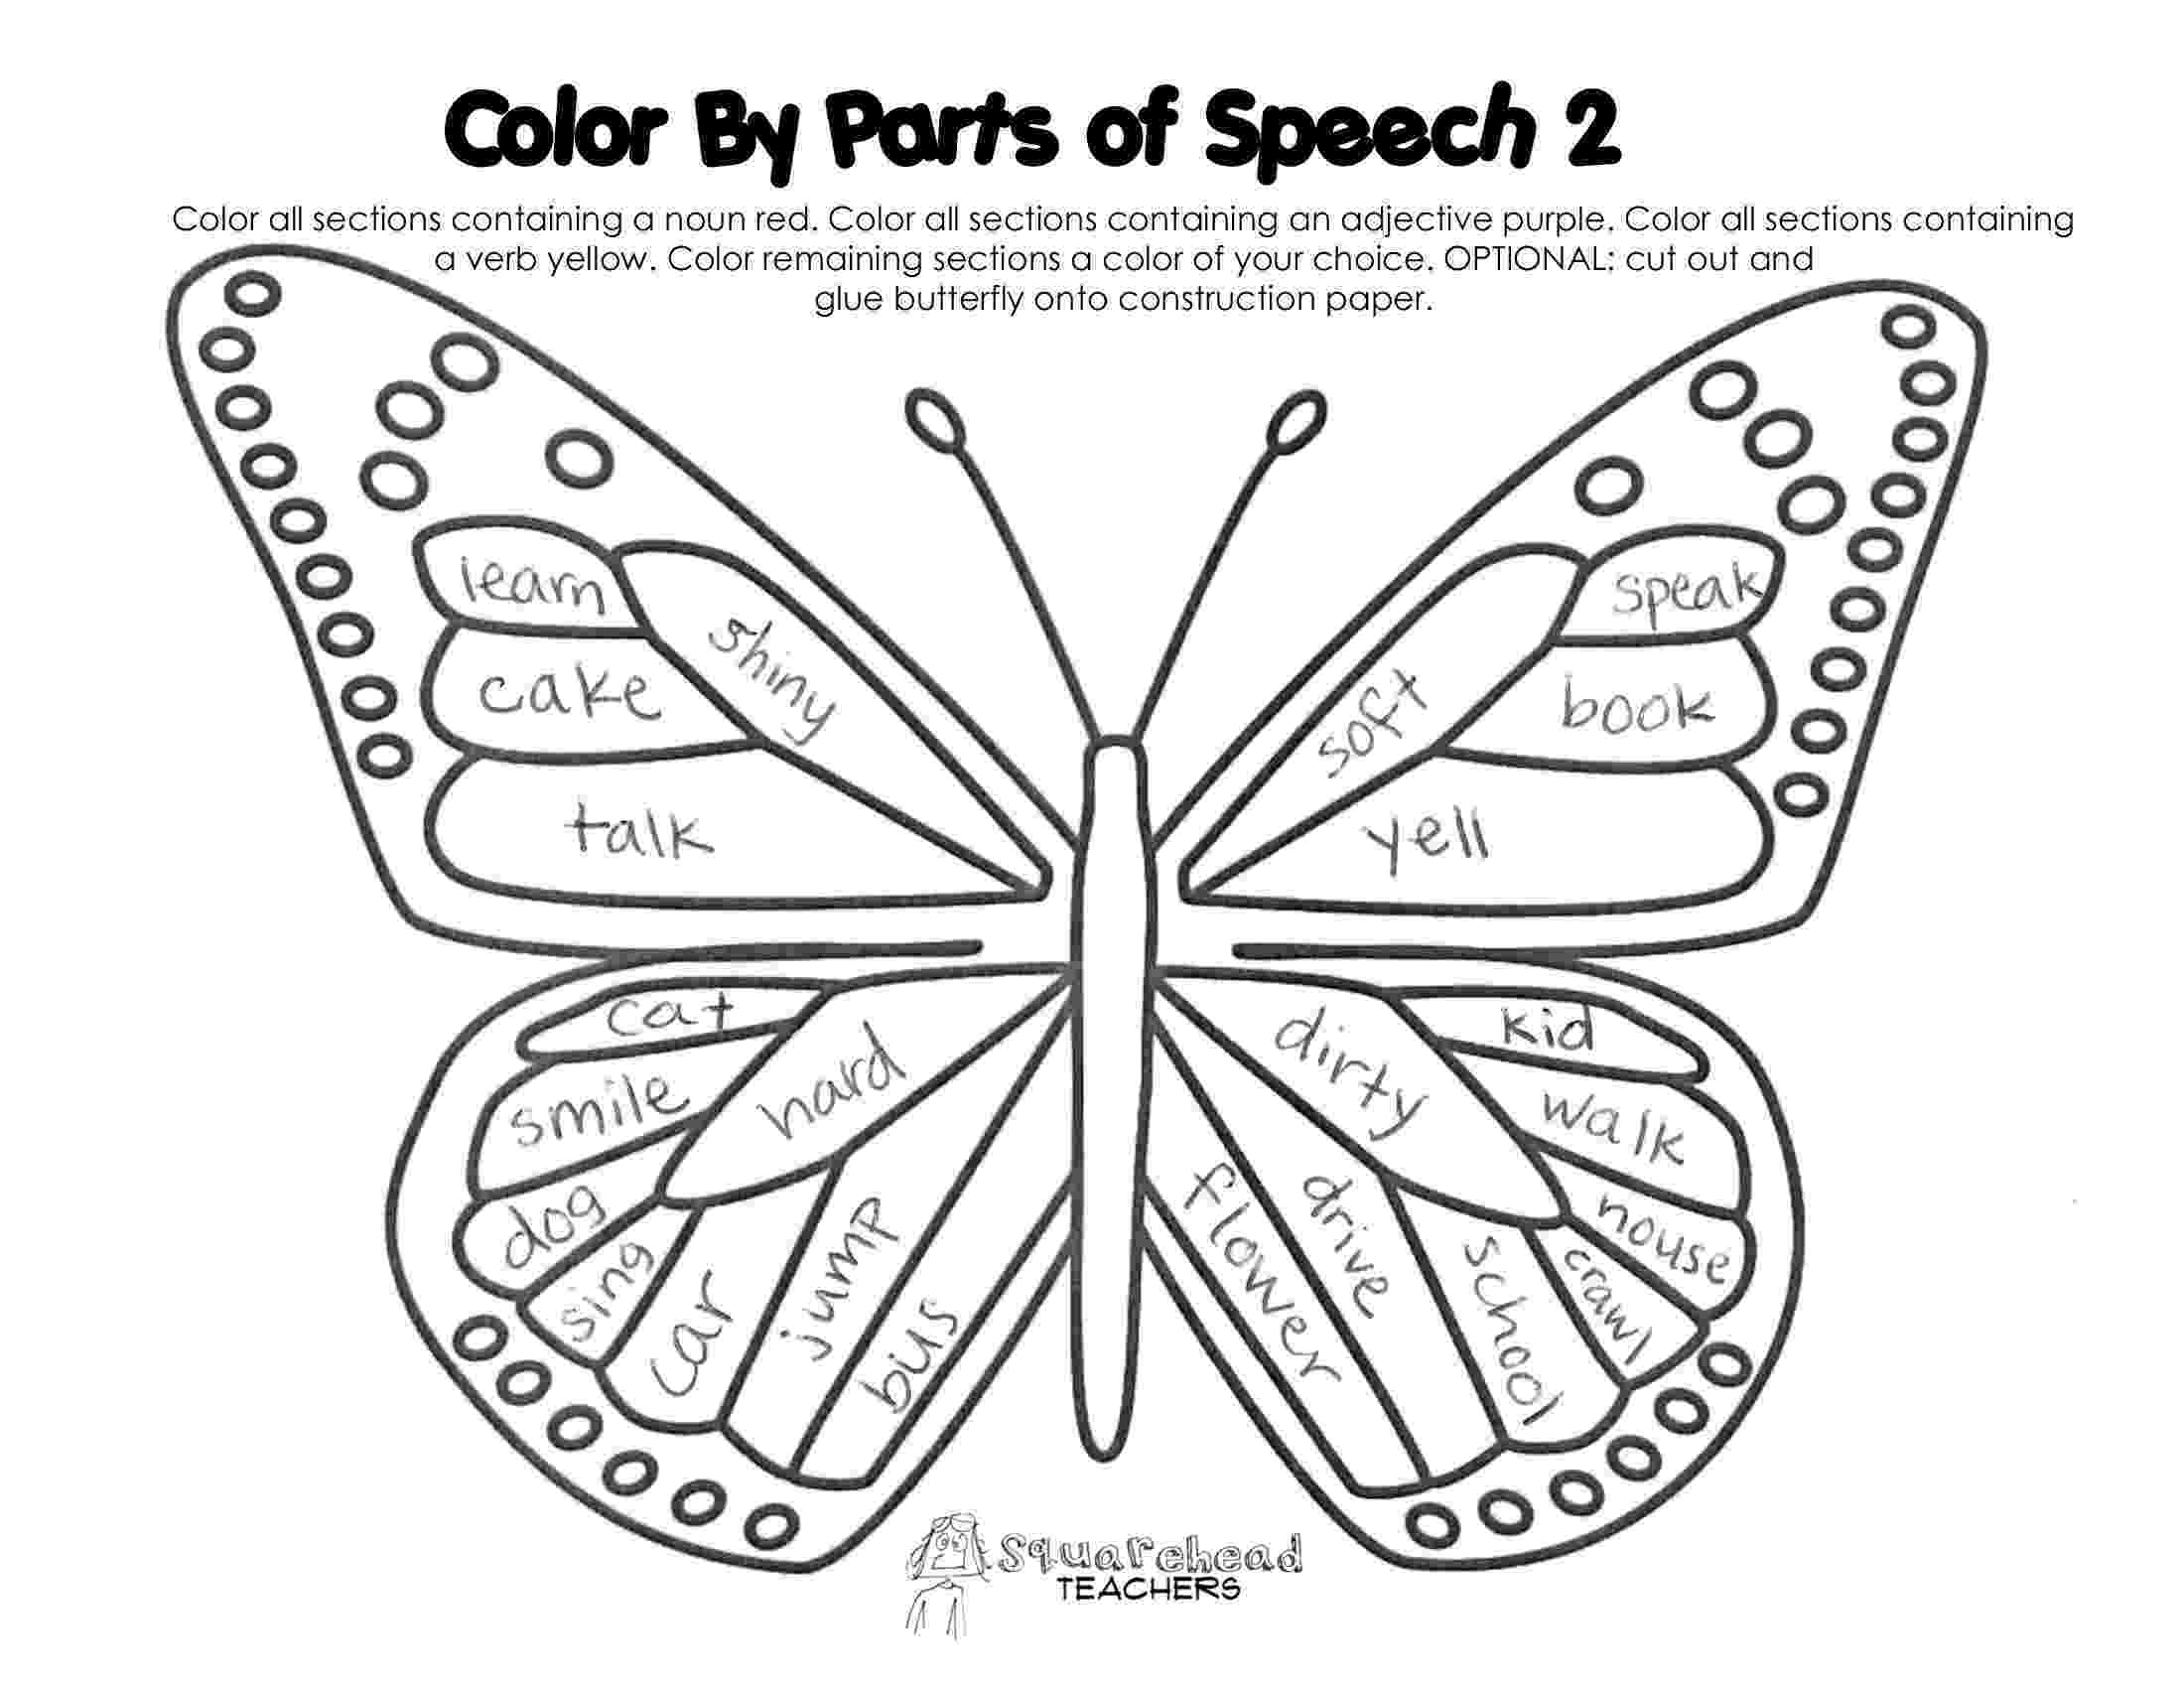 colouring pages for grade 2 2nd grade coloring pages free download on clipartmag pages colouring grade for 2